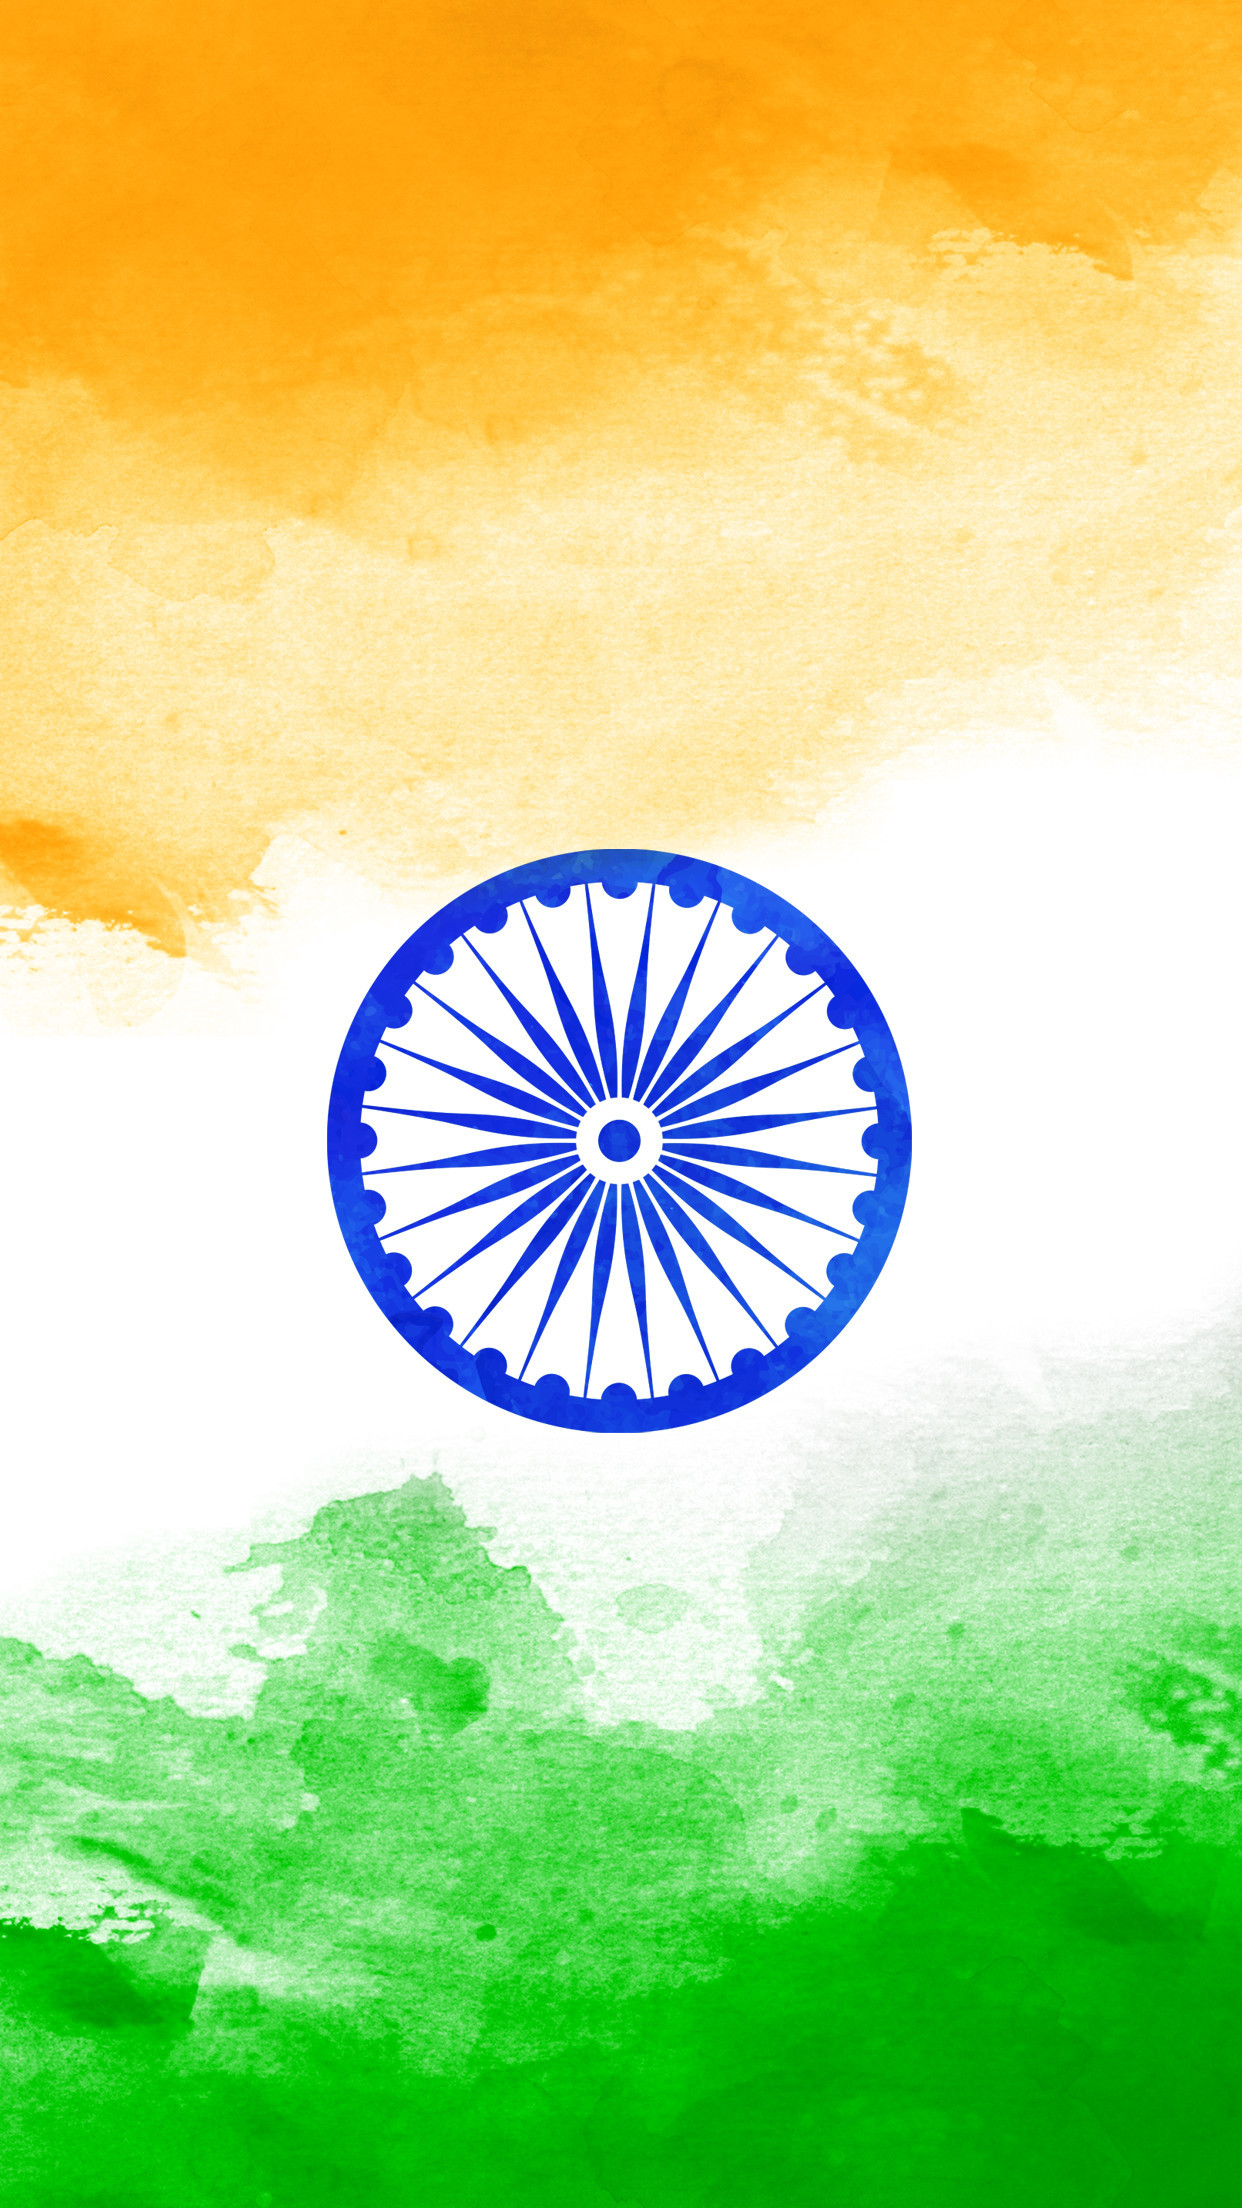 Indian Flag Live Wallpaper On Pc Android Source India 2018 79 Images